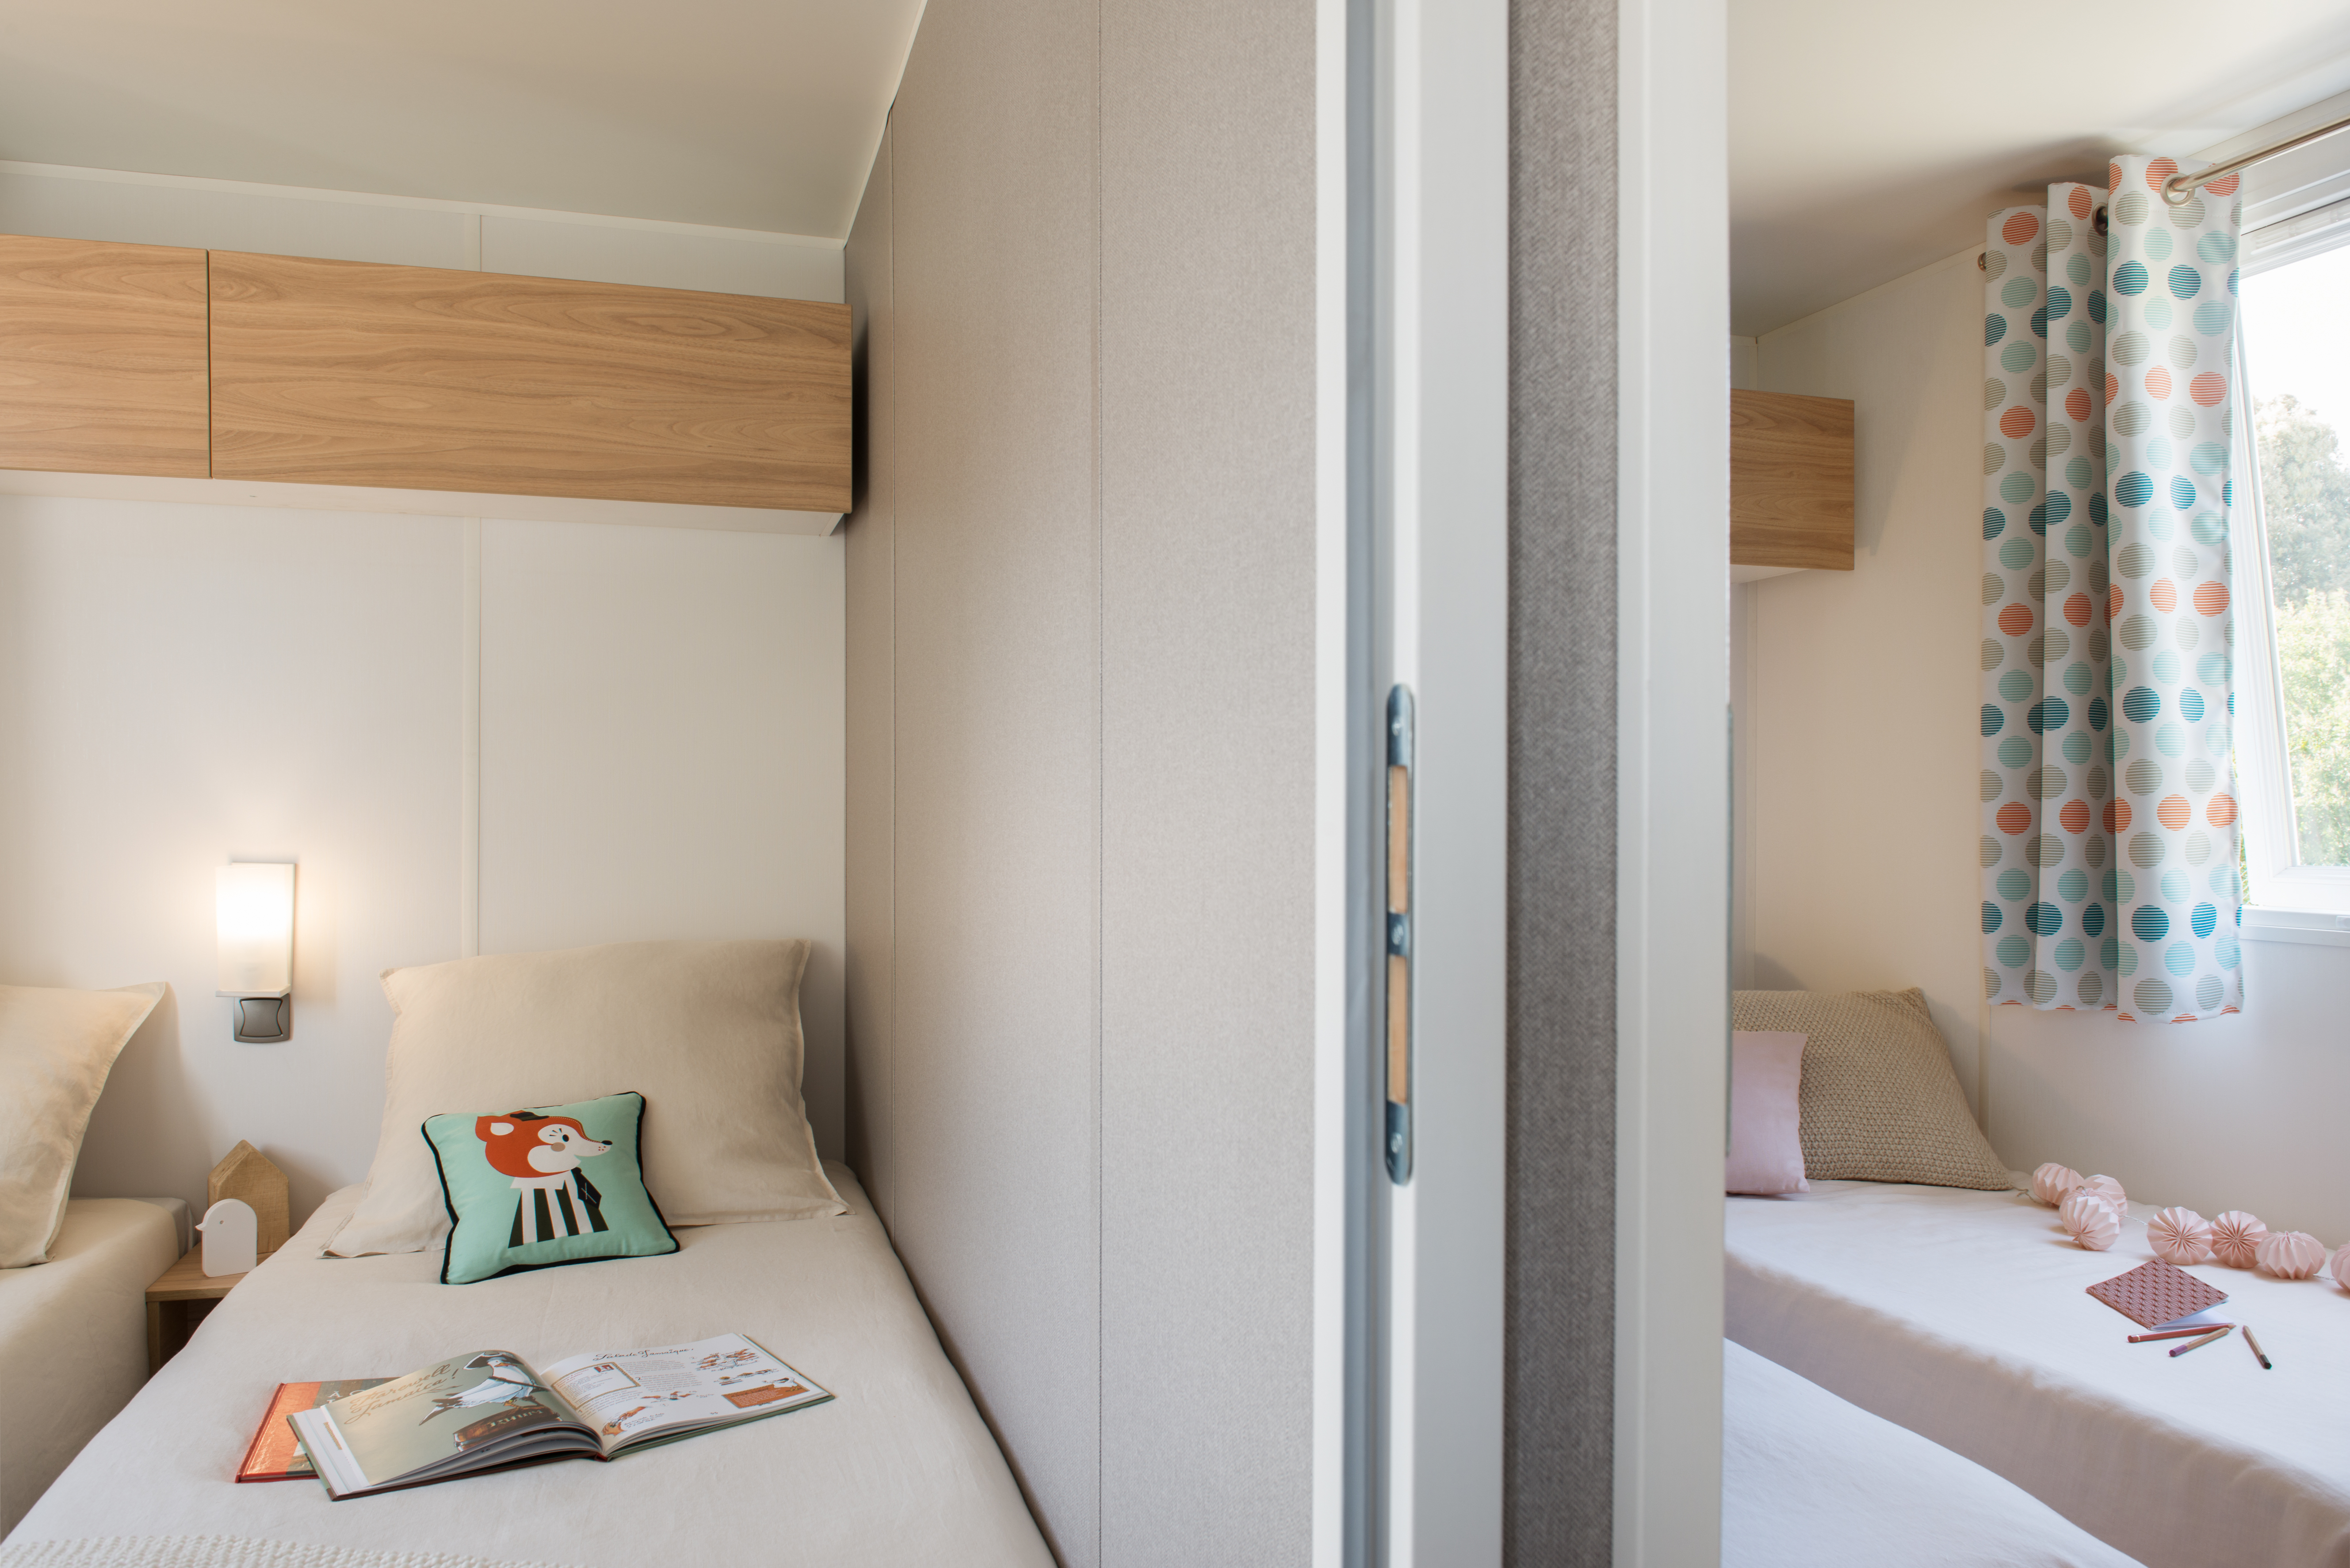 Mobil-home Famille 3 chambres - chambres lits simple